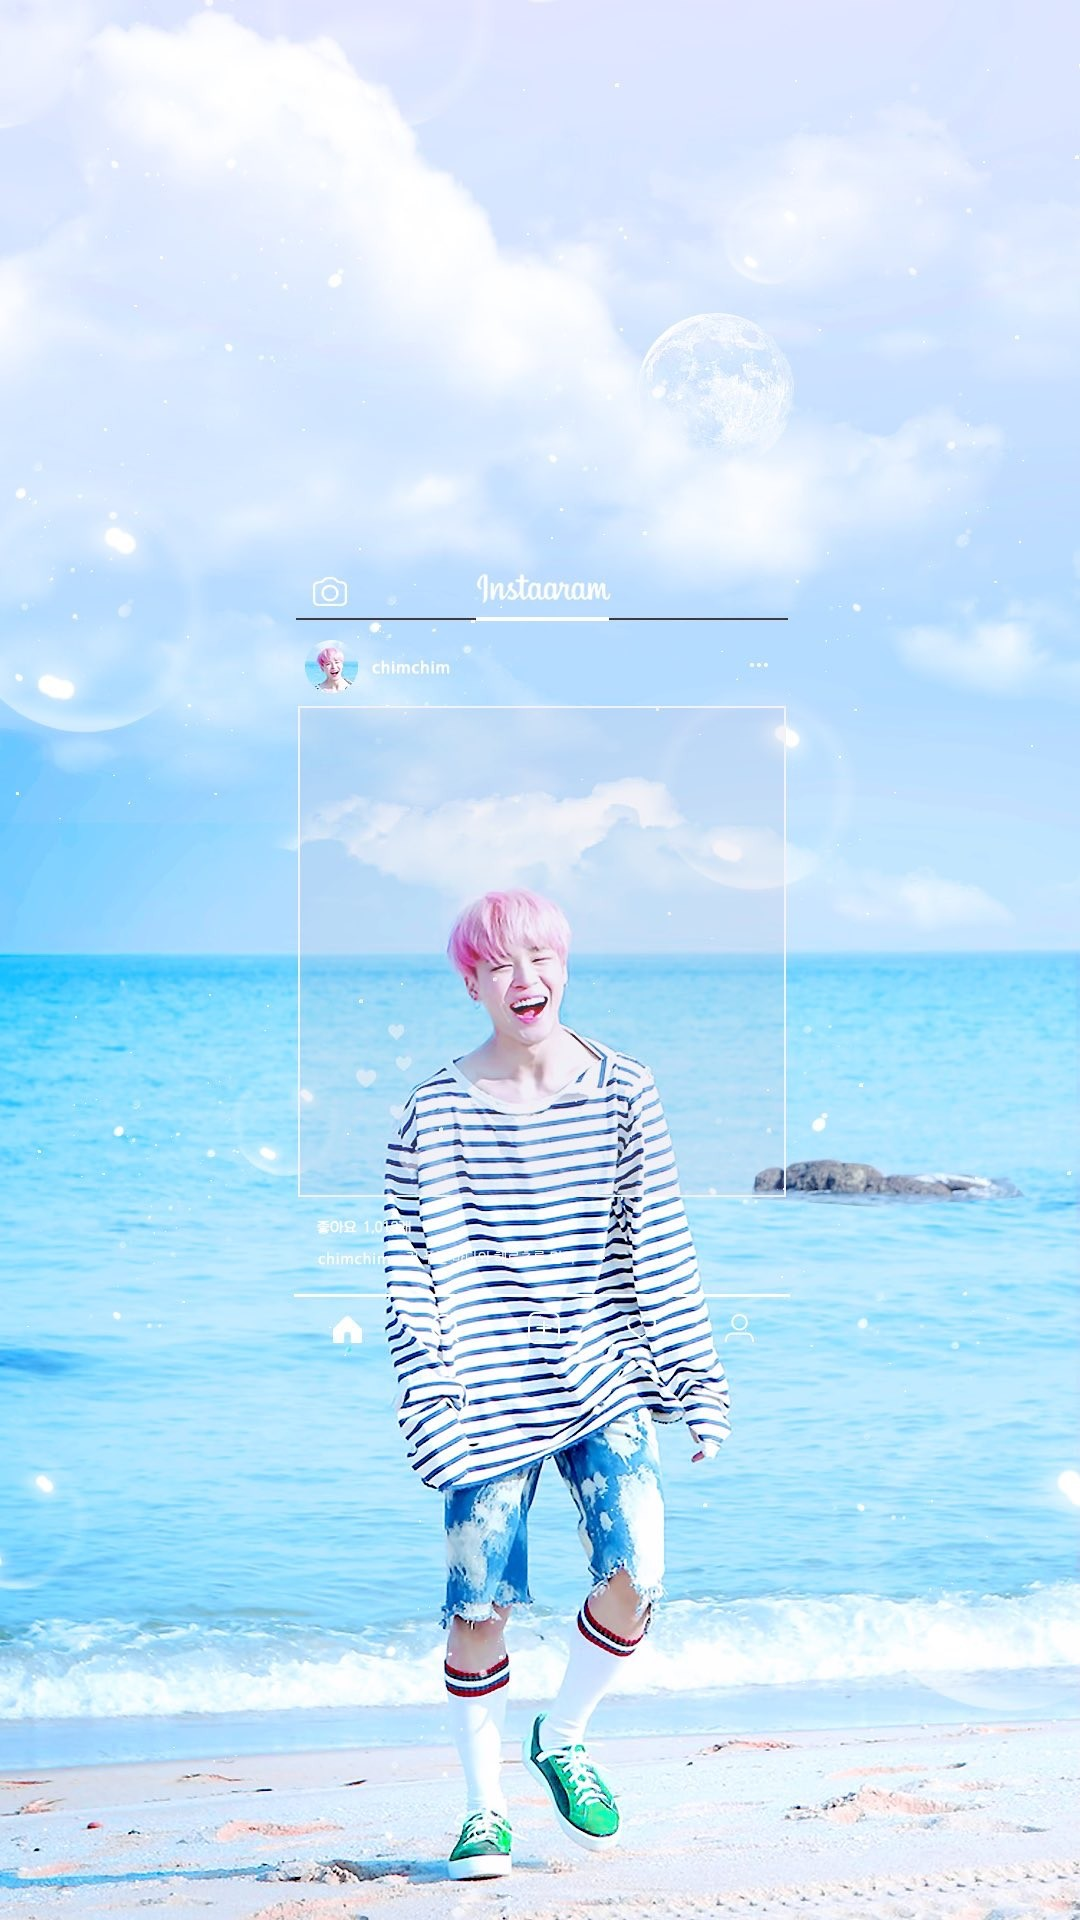 Free download Bts Wallpapers 71 images 1080x1920 for your